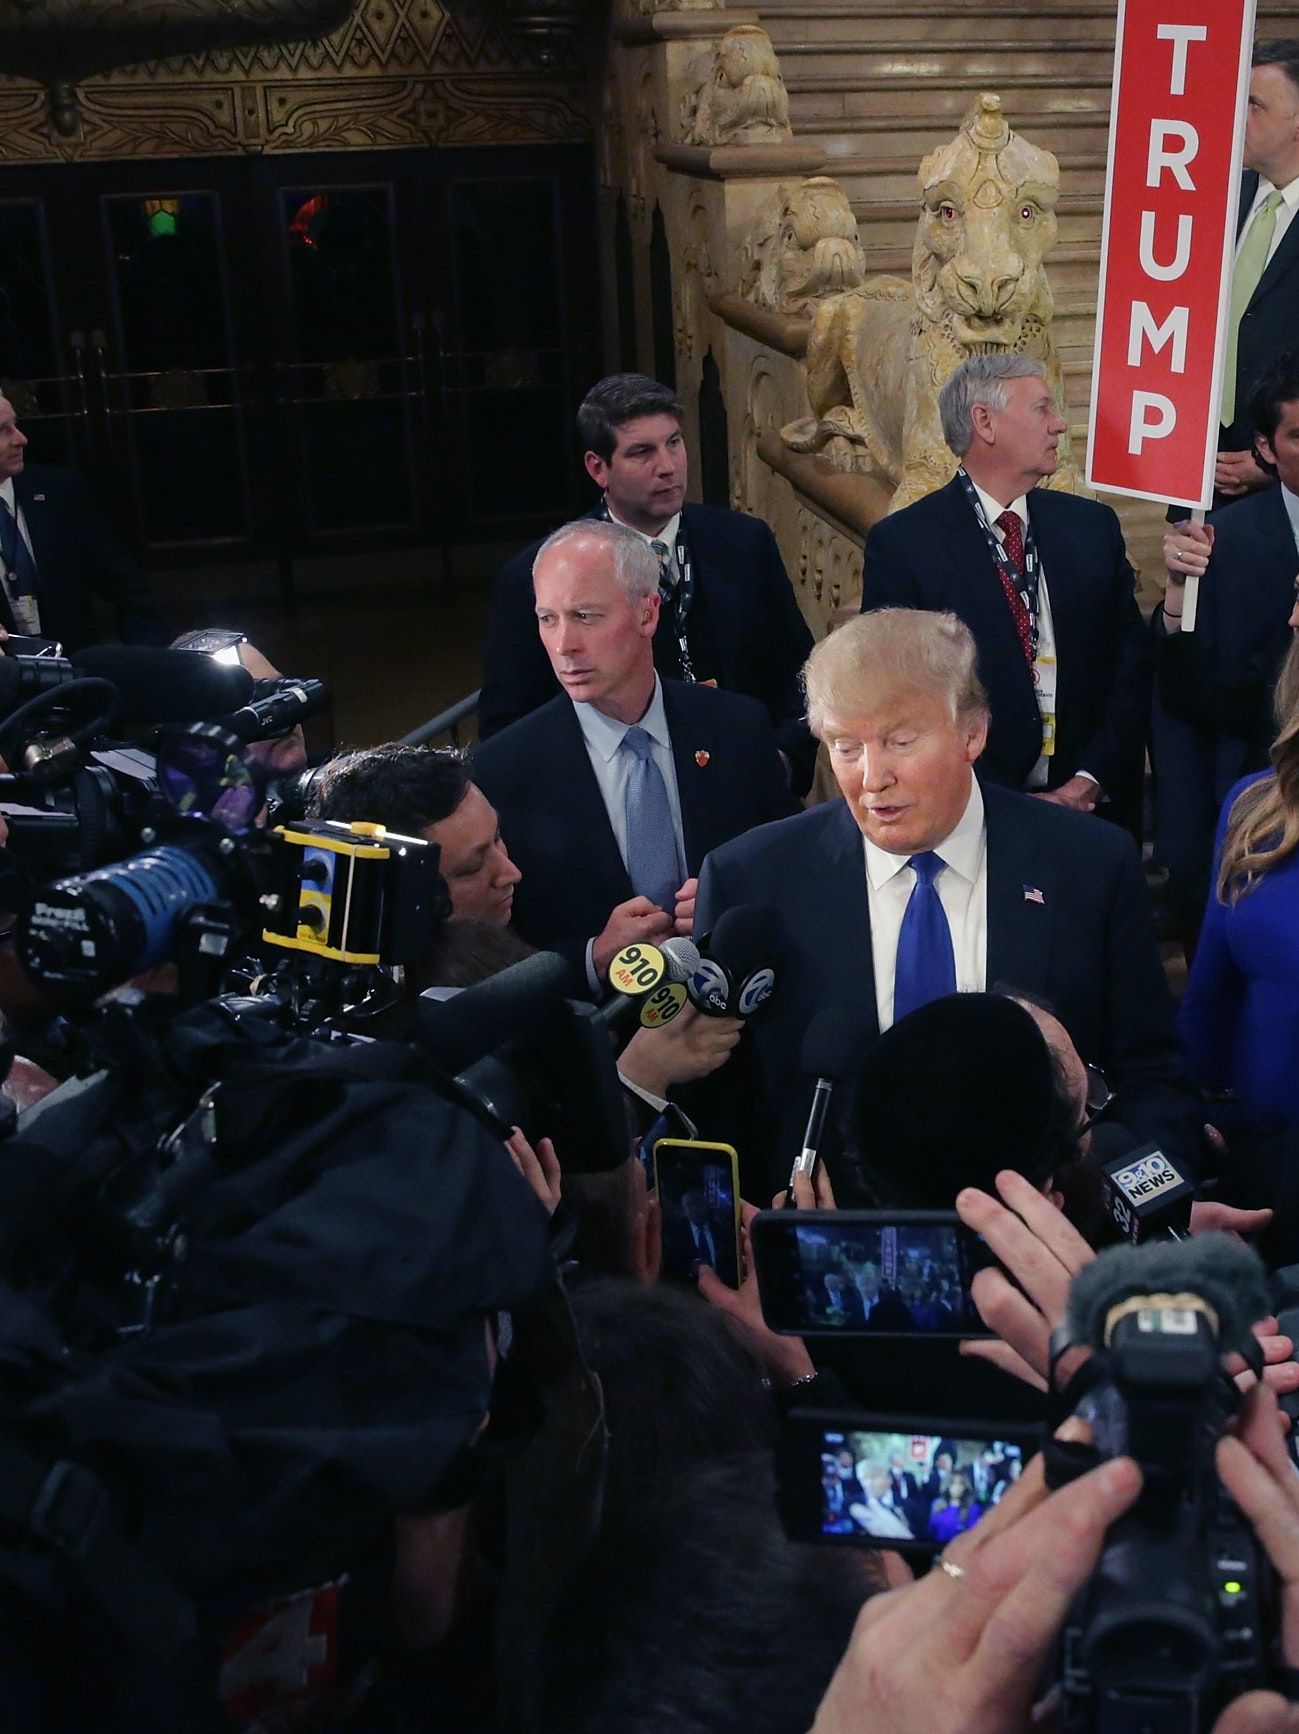 DETROIT, MI - MARCH 03:  Republican presidential candidate Donald Trump greets reporters in the spin room following a debate sponsored by Fox News at the Fox Theatre on March 3, 2016 in Detroit, Michigan. Voters in Michigan will go to the polls March 8 for the State's primary.  (Photo by Chip Somodevilla/Getty Images)